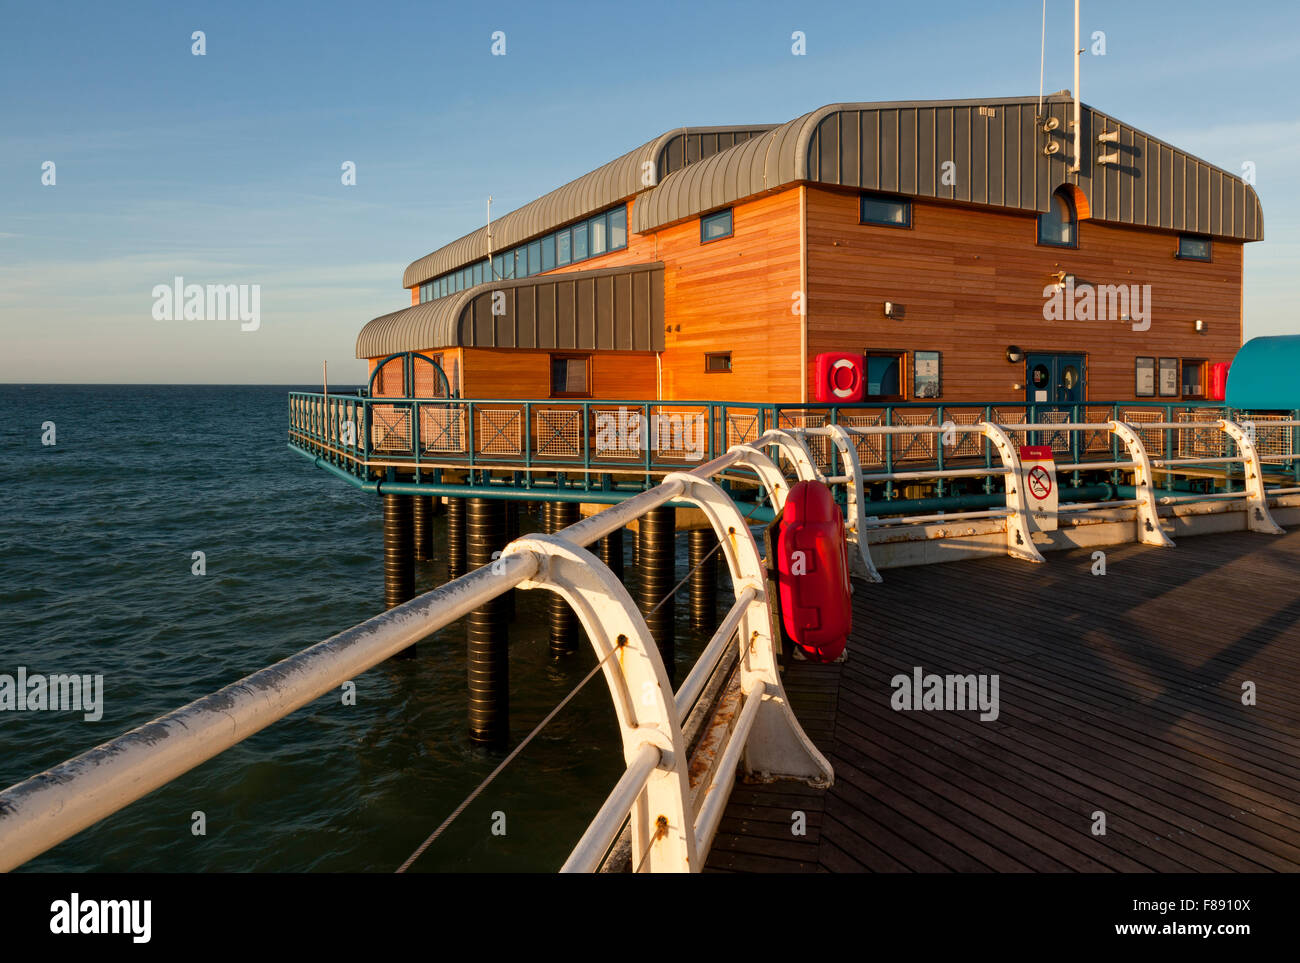 Cromer life boat station, Norfolk England UK - Stock Image